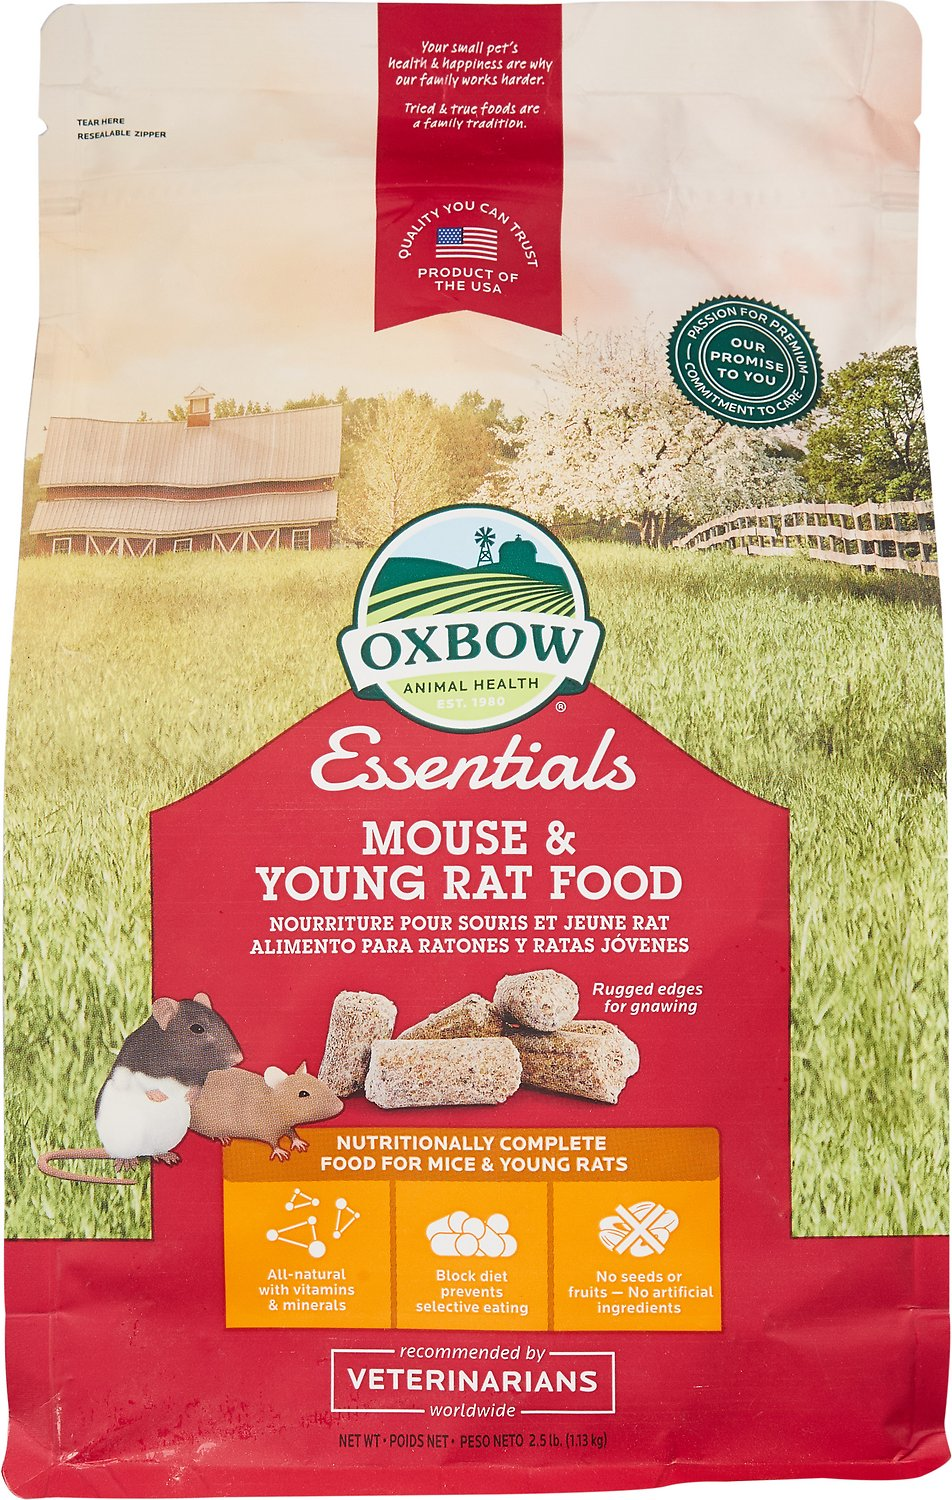 Oxbow Essentials Mouse & Young Rat Food Image